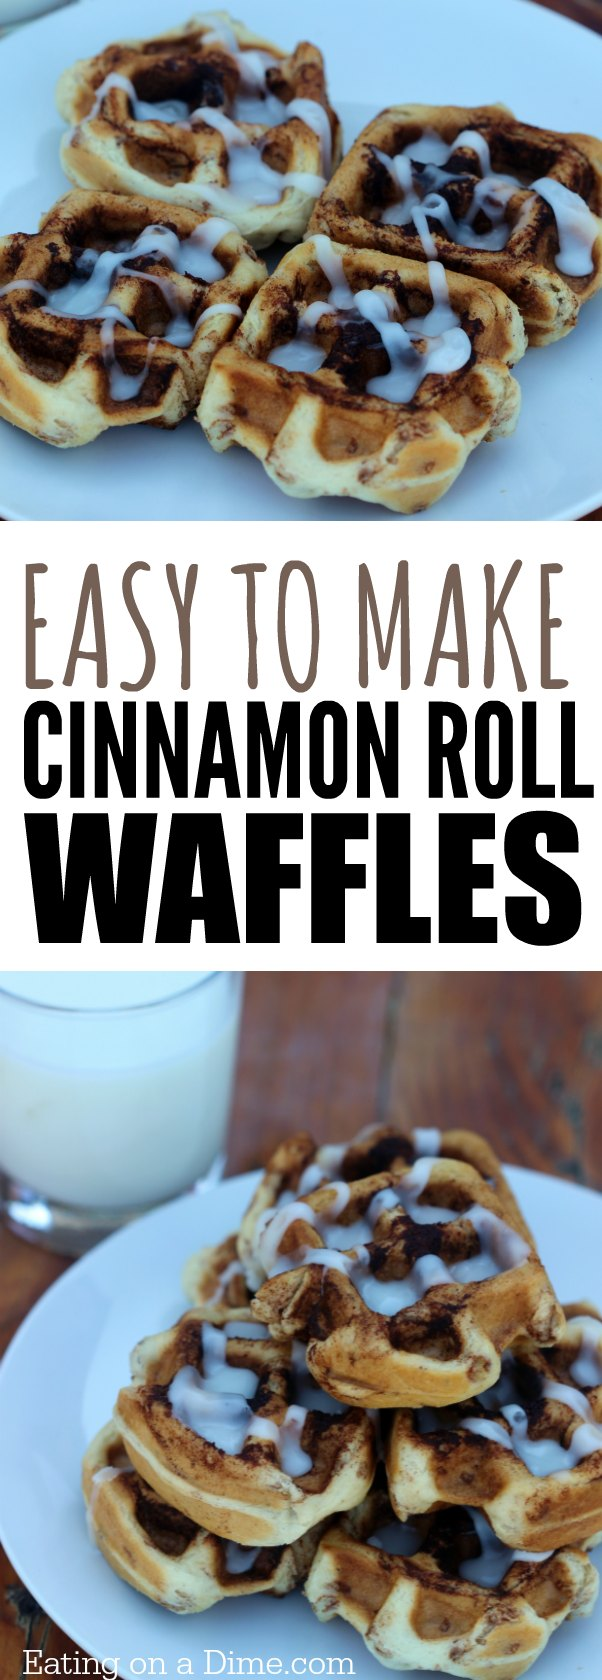 cinnamon-roll-waffles-are-easy-and-delicious